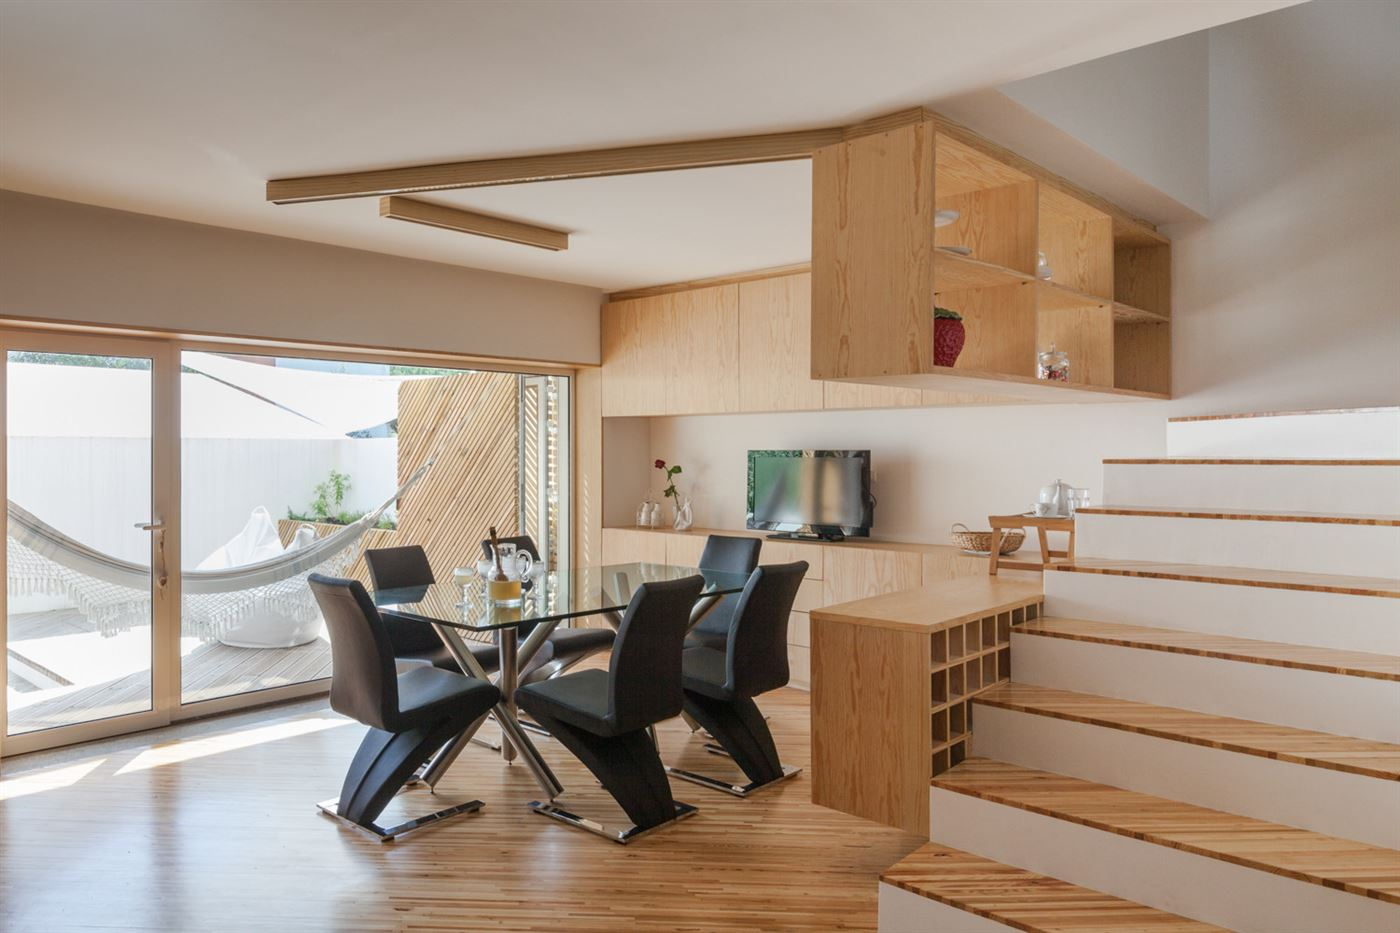 wood floor and beam, wooden stairs and furniture